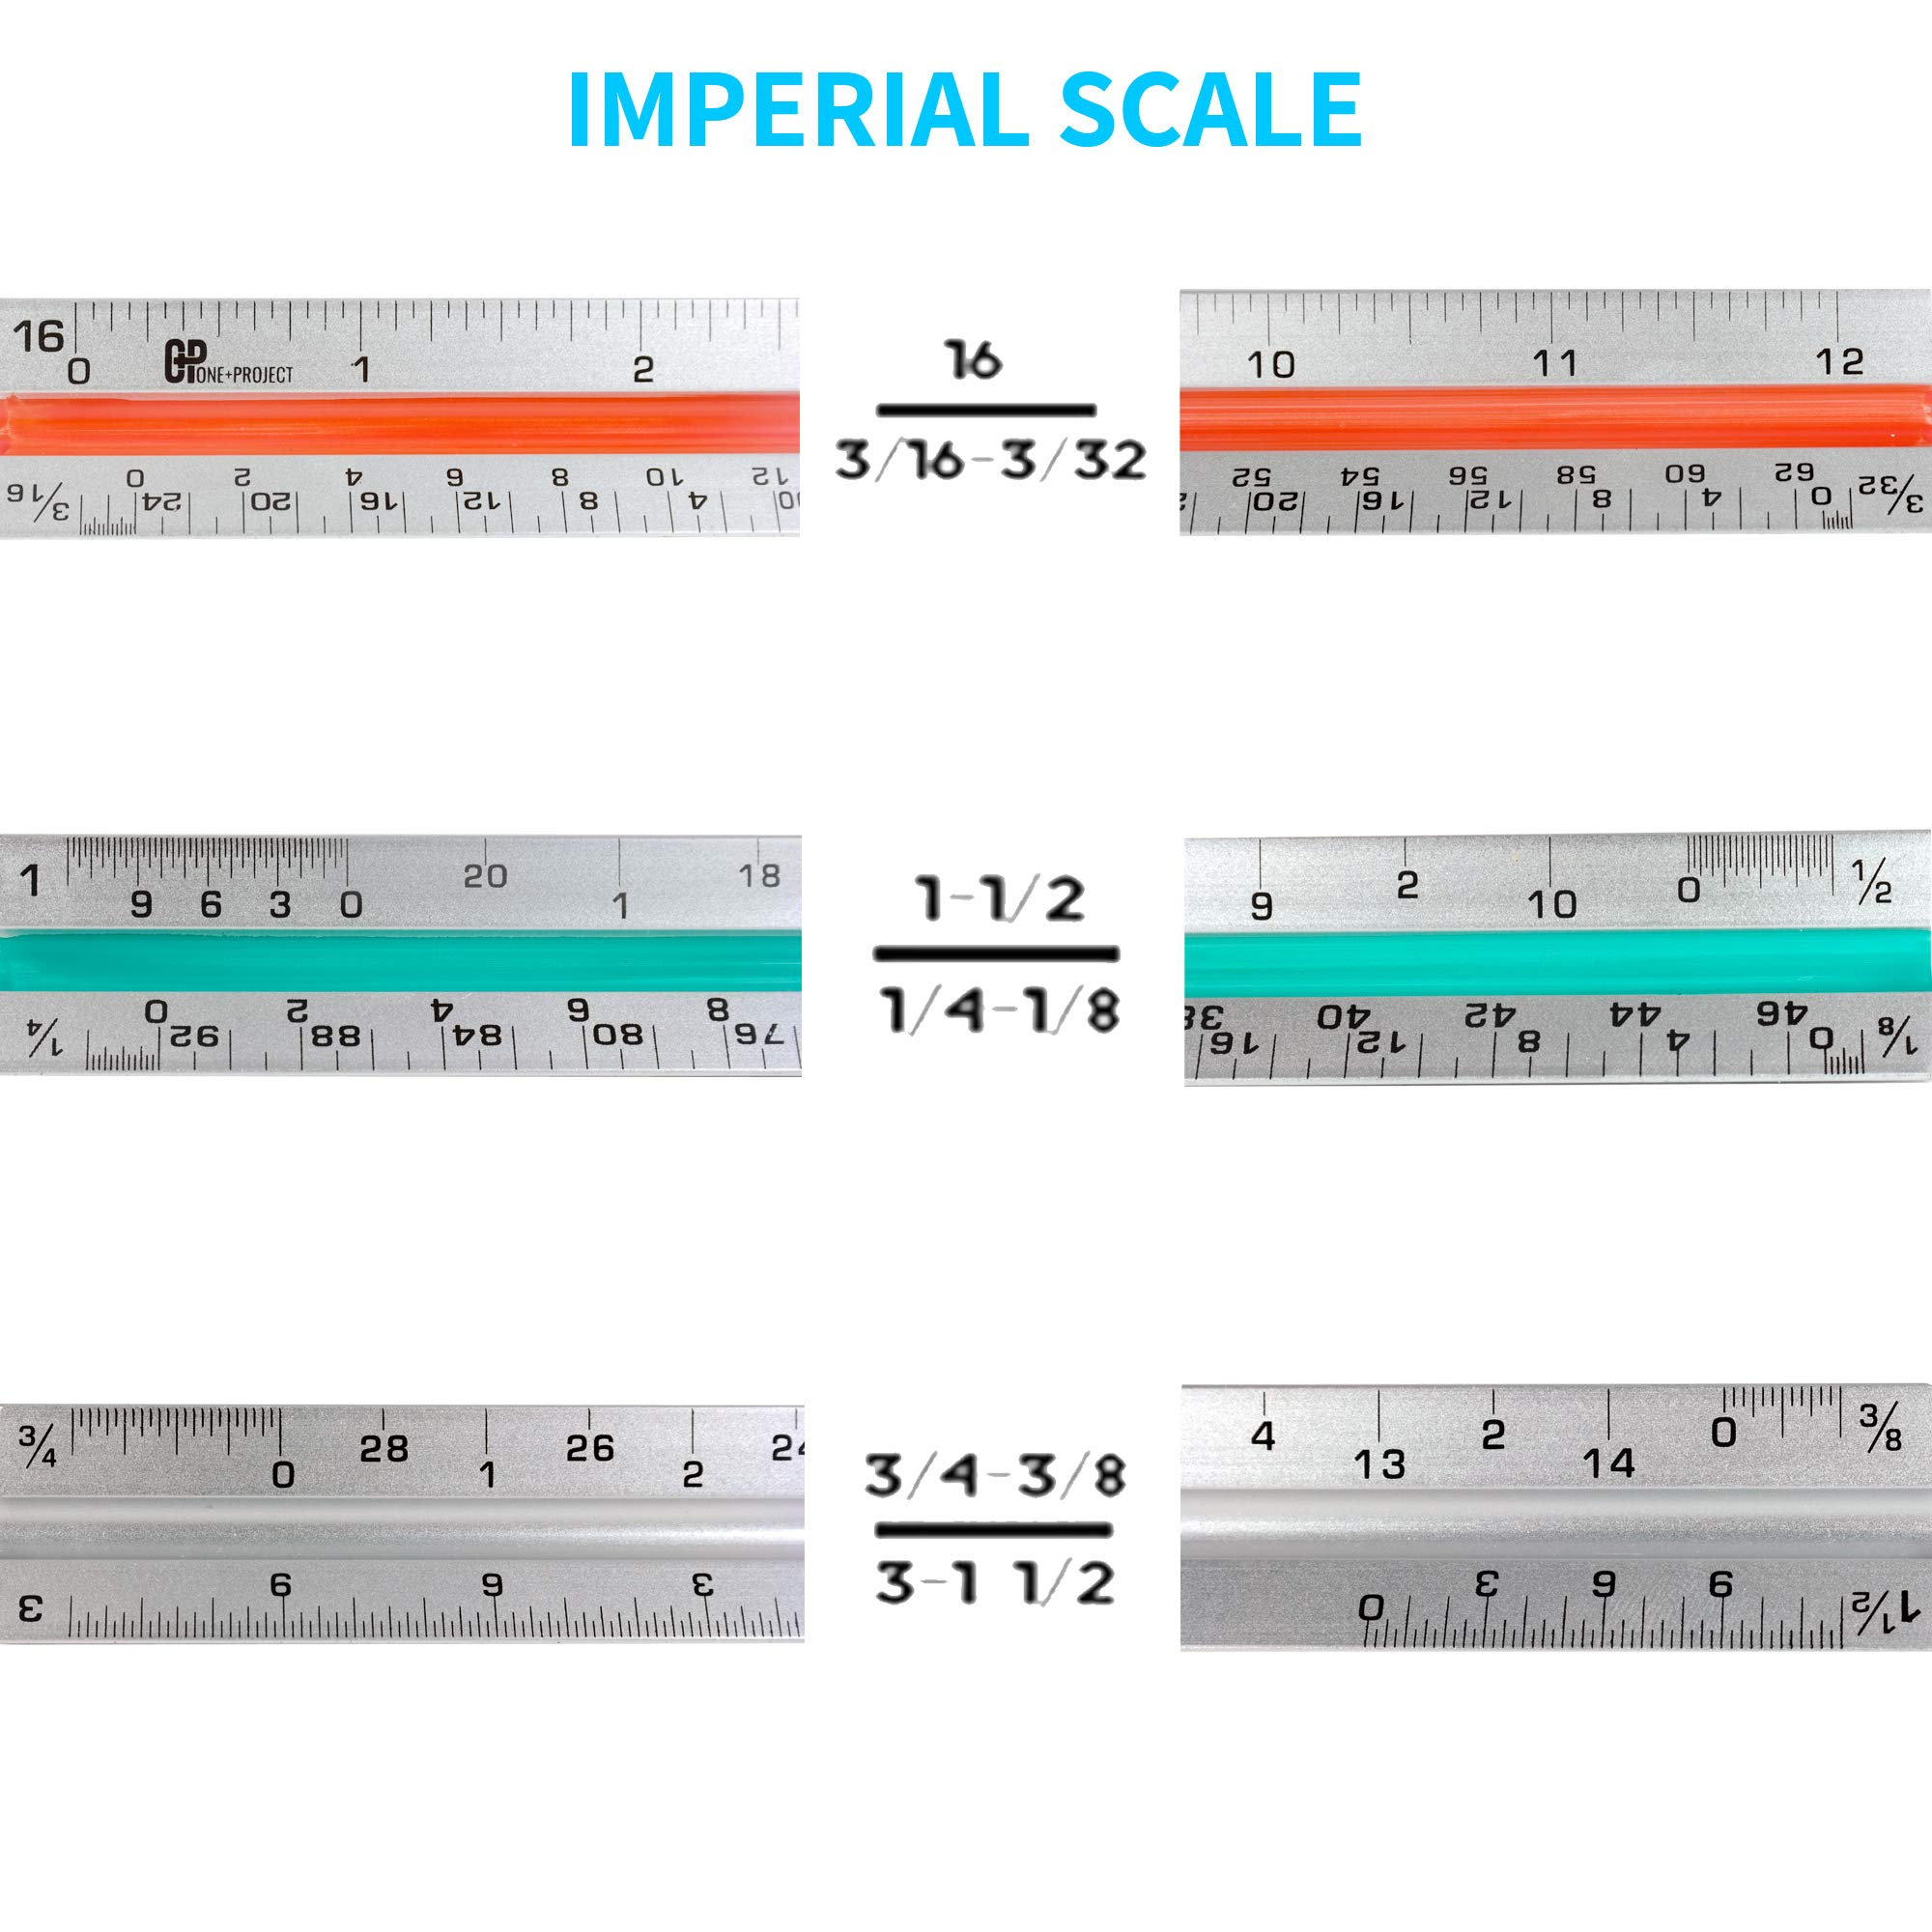 One+Project Triangular Architect Scale,12 – Inch Aluminum Ruler Color – Code Grooves with Protective Carrying Case - Imperial Measurements by One+Project (Image #4)